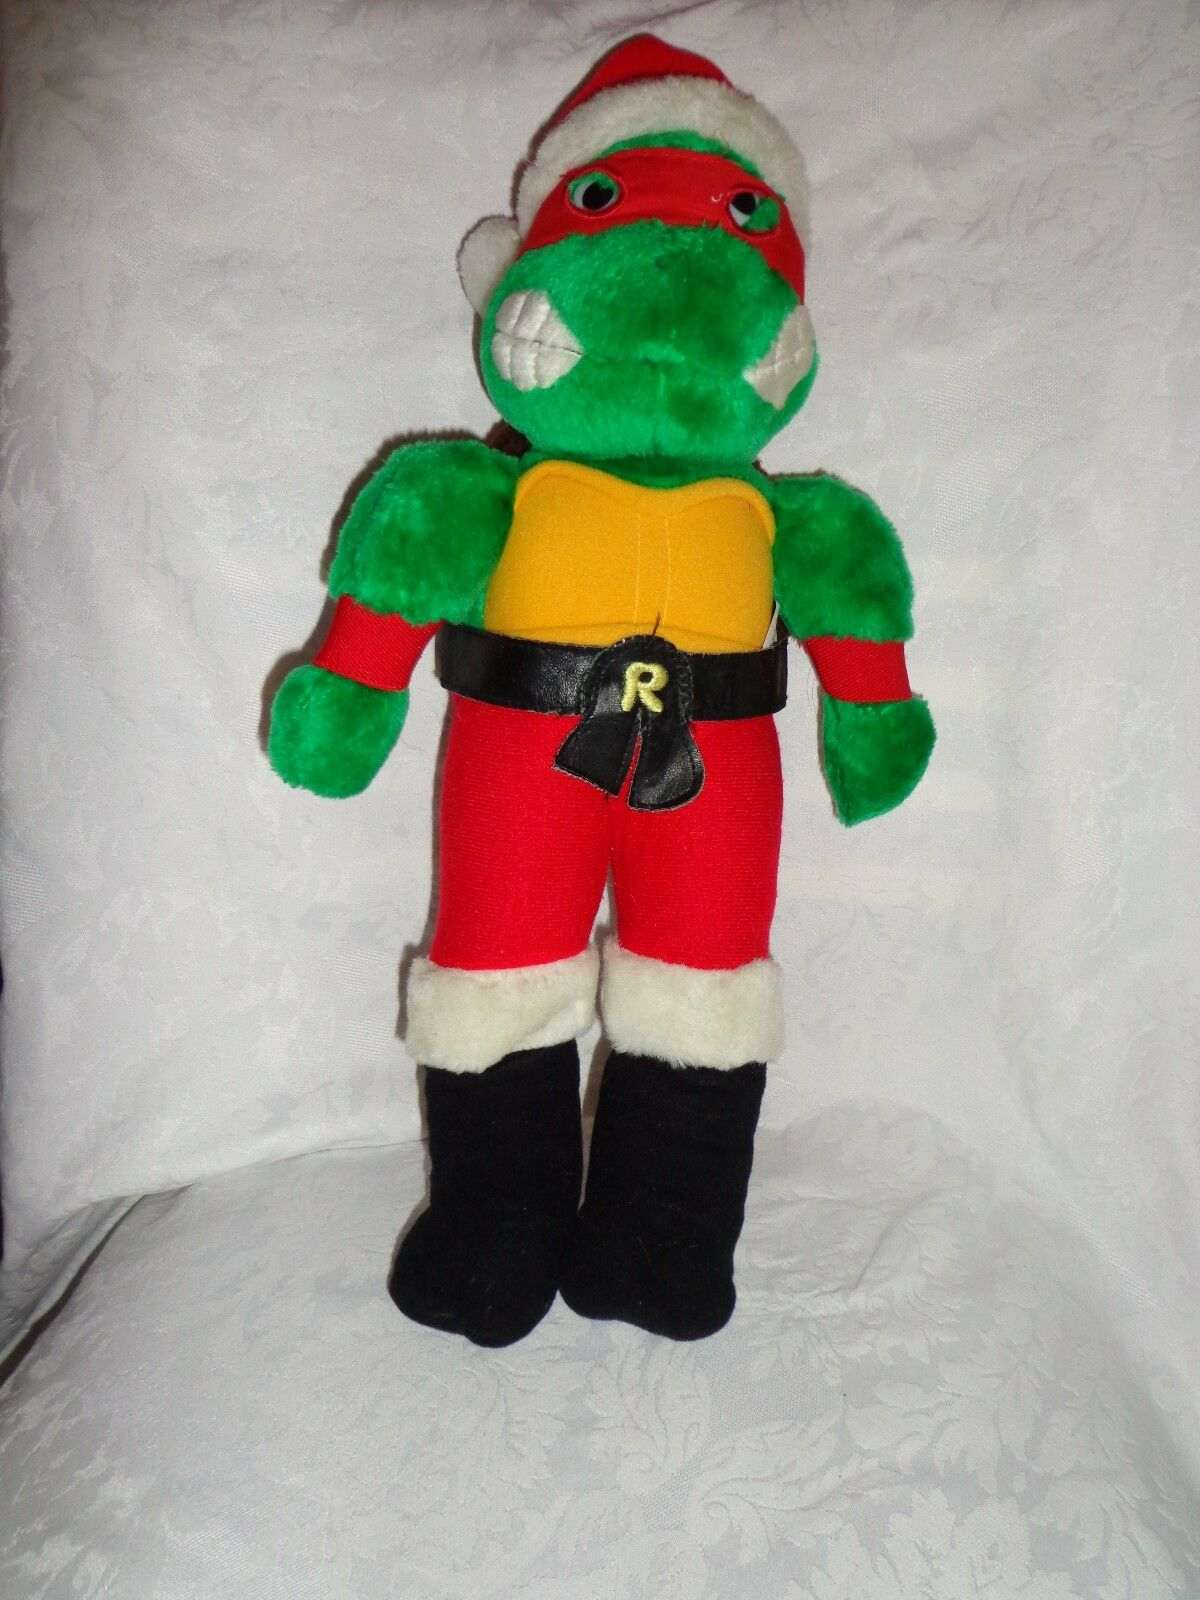 1990 Teenage Mutant Ninja Turtles Rafael 19  Santa Plush Toy Stuffed Animal